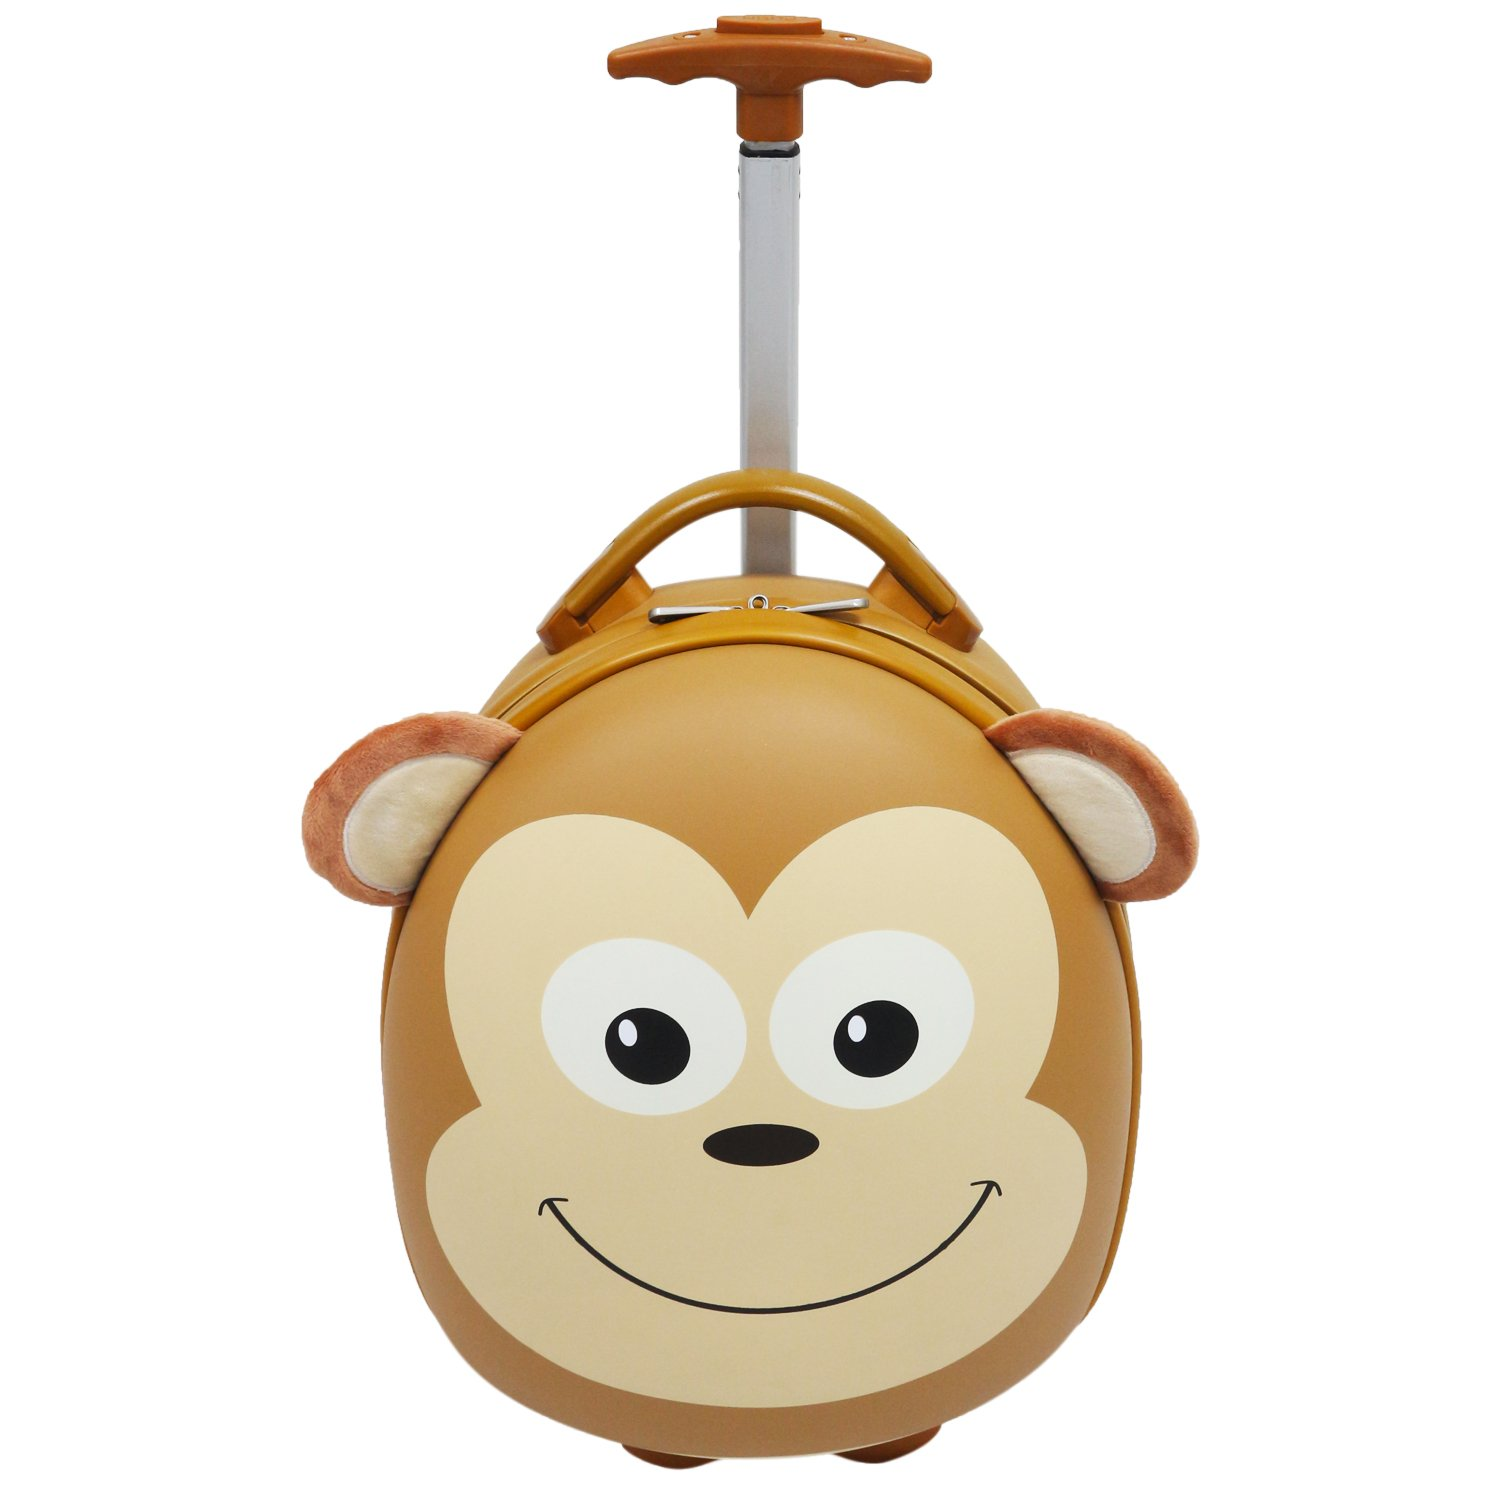 "Emmzoe Kids & Toddler 15"" Carry On Animal Trolley Hardshell Luggage - Lightweight EVA, Dent Proof, Adjustable Handle for Age 2+ (Mooch Monkey)"